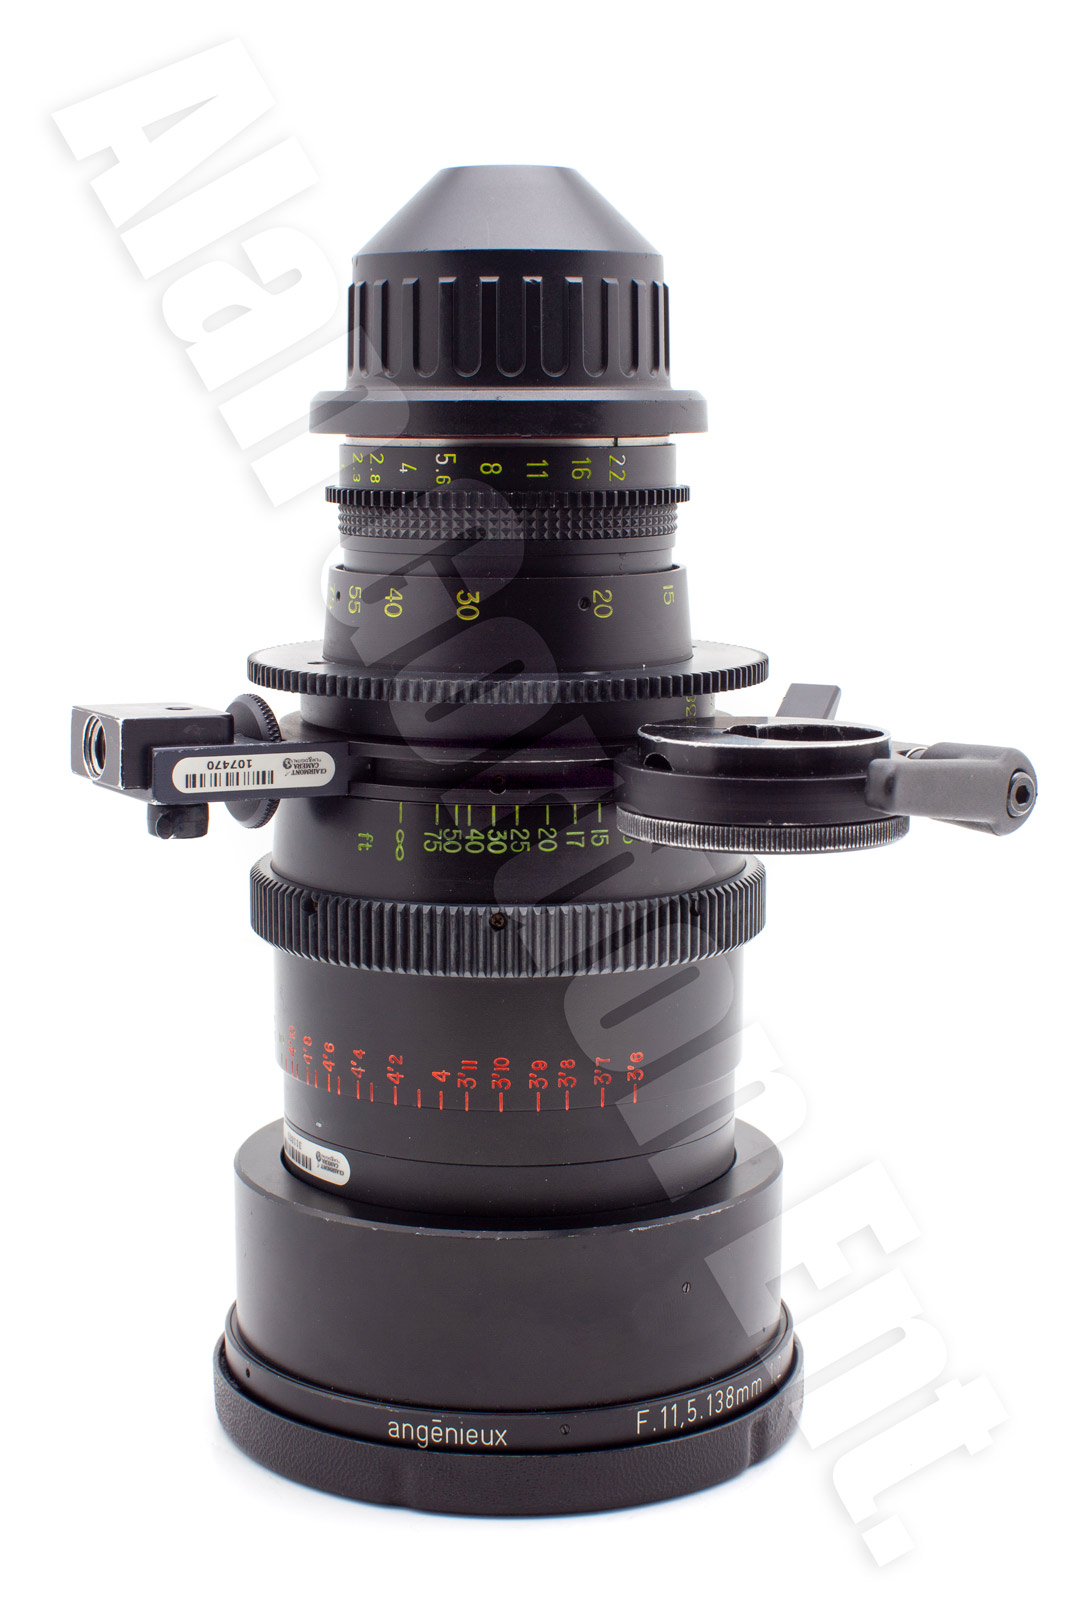 Angenieux 11 5 138mm Anamorphic Zoom Lens Pl Mount For